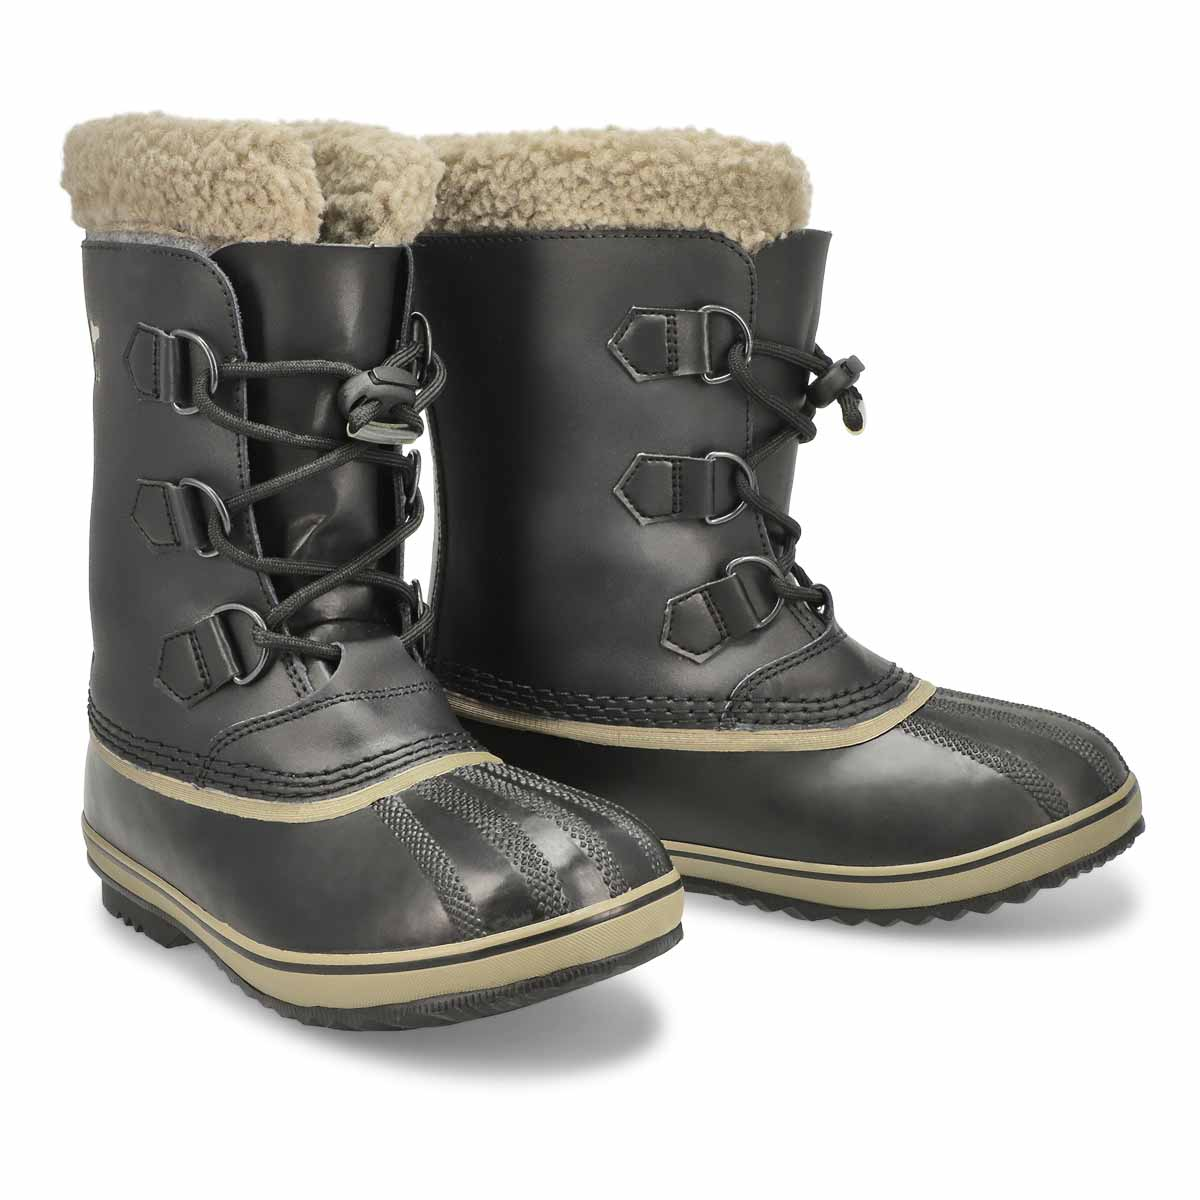 Kds Yoot Pac TP blk wtpf snow boot